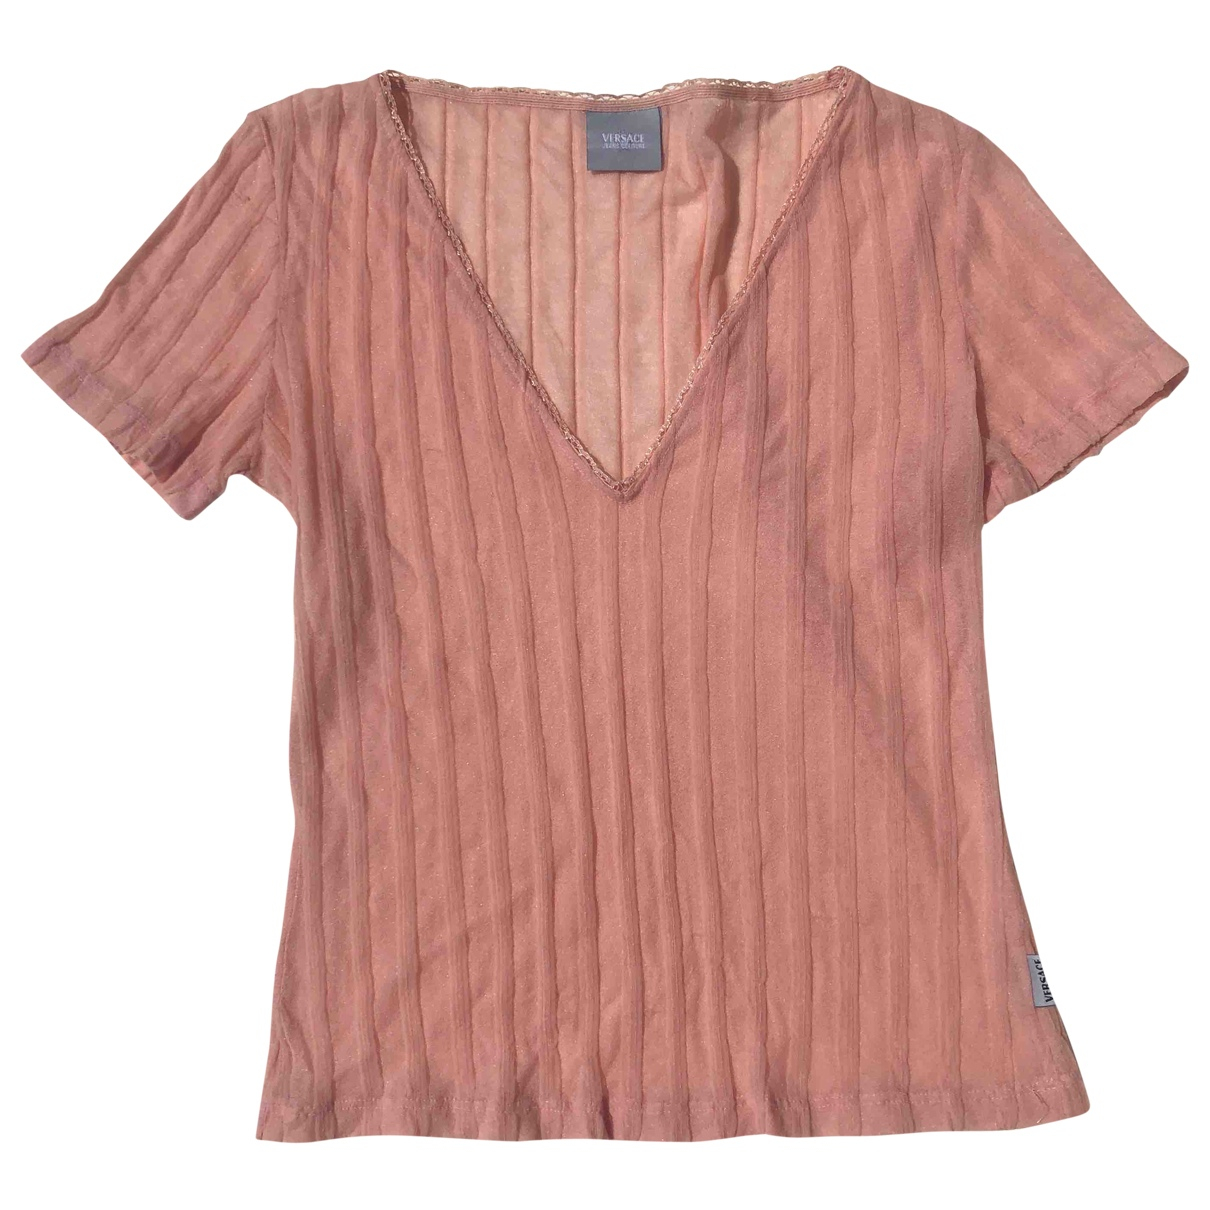 Versace \N Pink Cotton  top for Women 36 FR